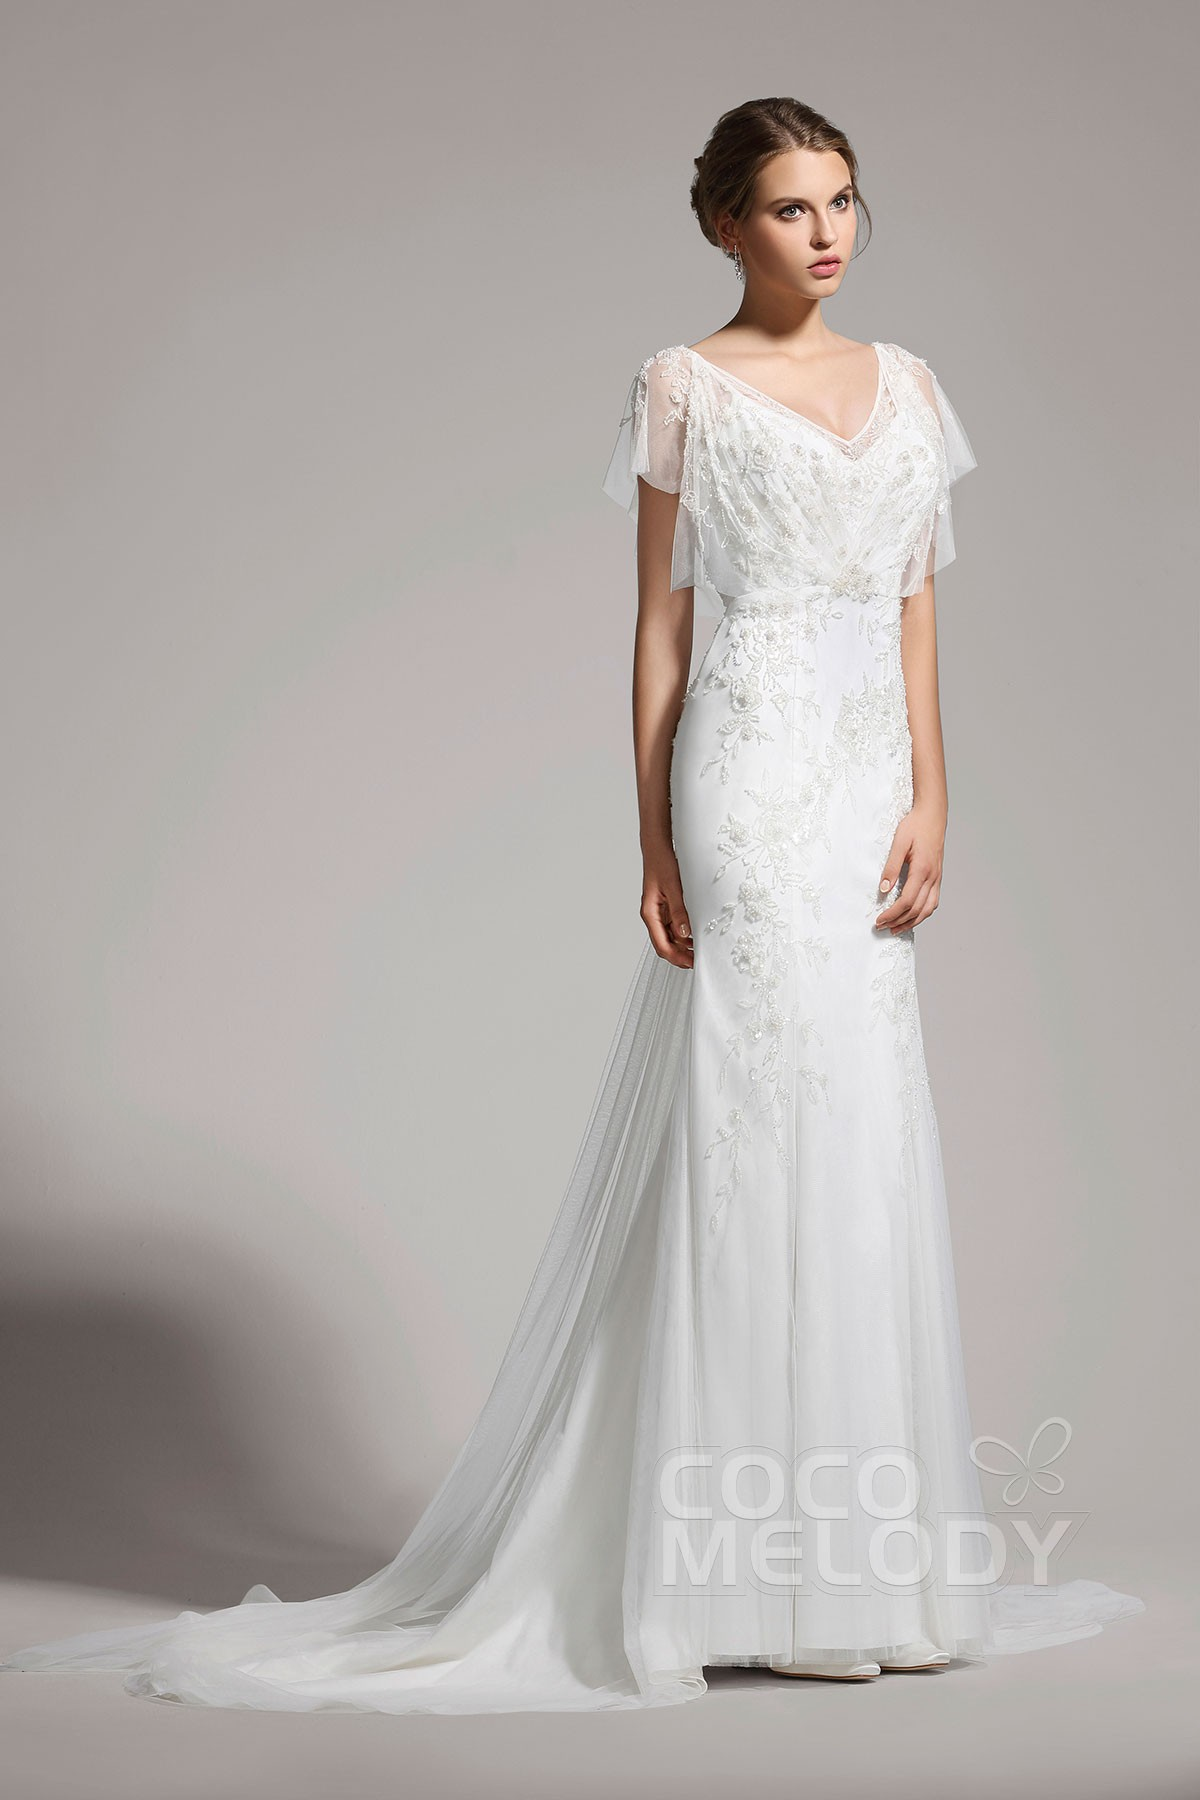 Delicate Sheath-Column V-neck Tulle Ivory Cap Sleeve Wedding Dress with  Beading AWVT15001 0fa5256f0508